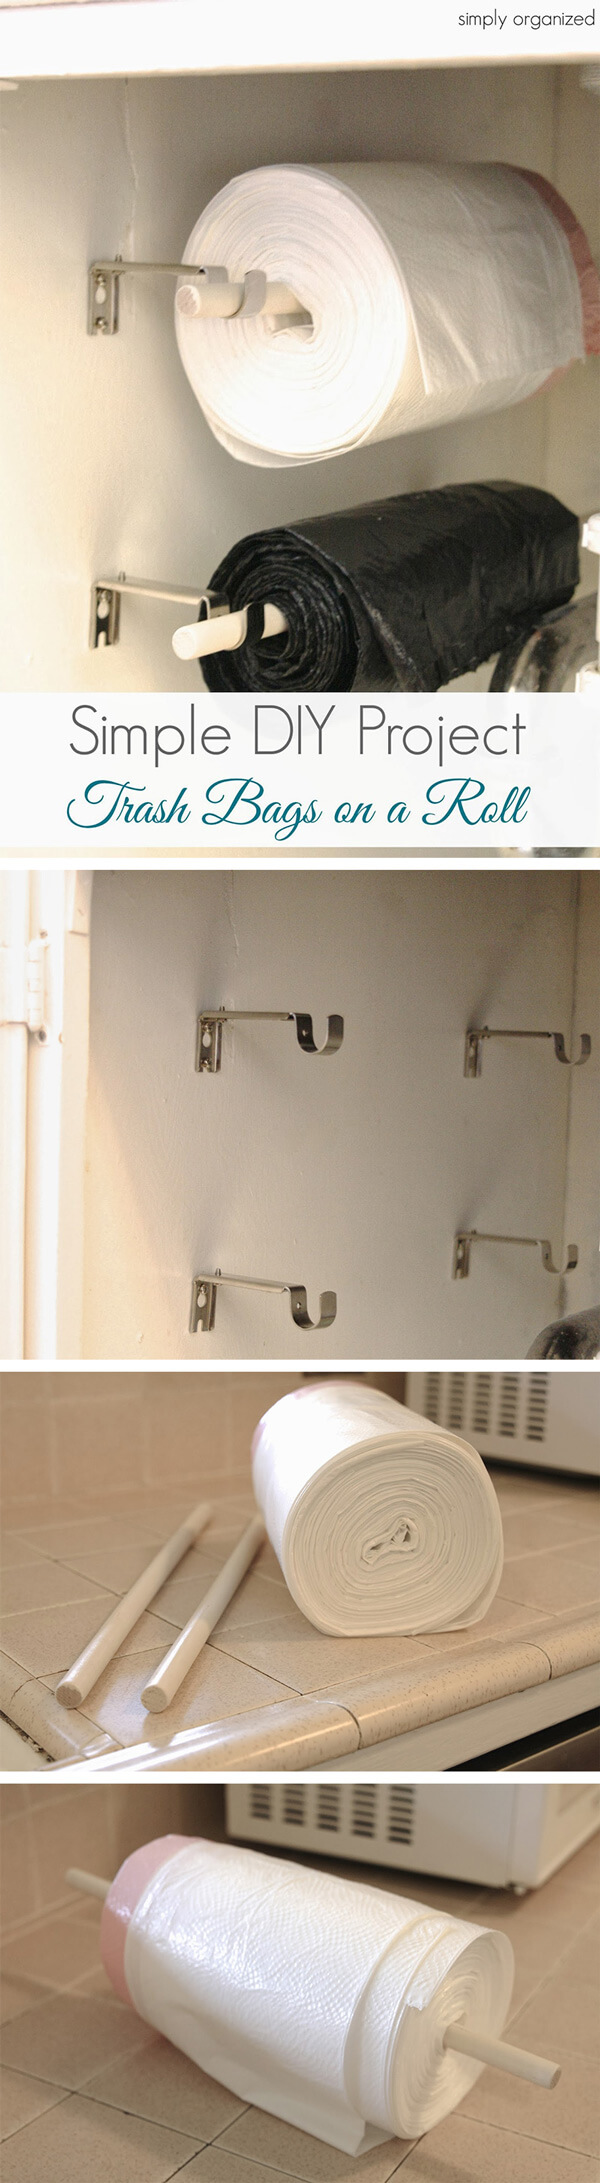 DIY Wall-Mounted Trash Bag Rollers